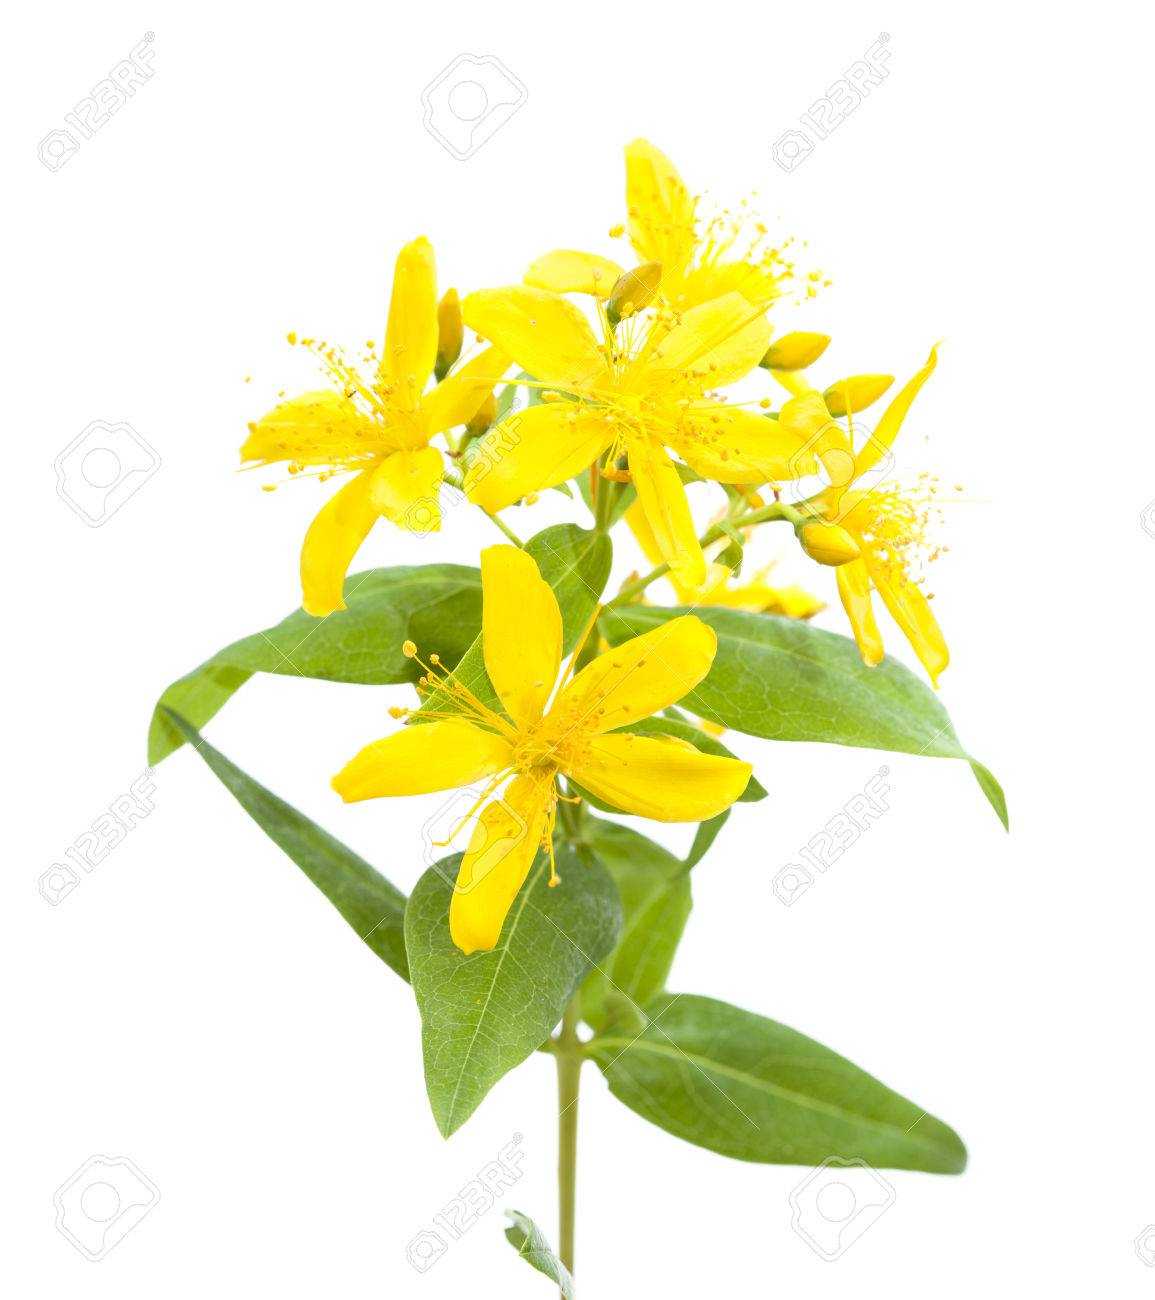 Yellow flowers of canary islands st johns wort isolated on stock stock photo yellow flowers of canary islands st johns wort isolated on white background mightylinksfo